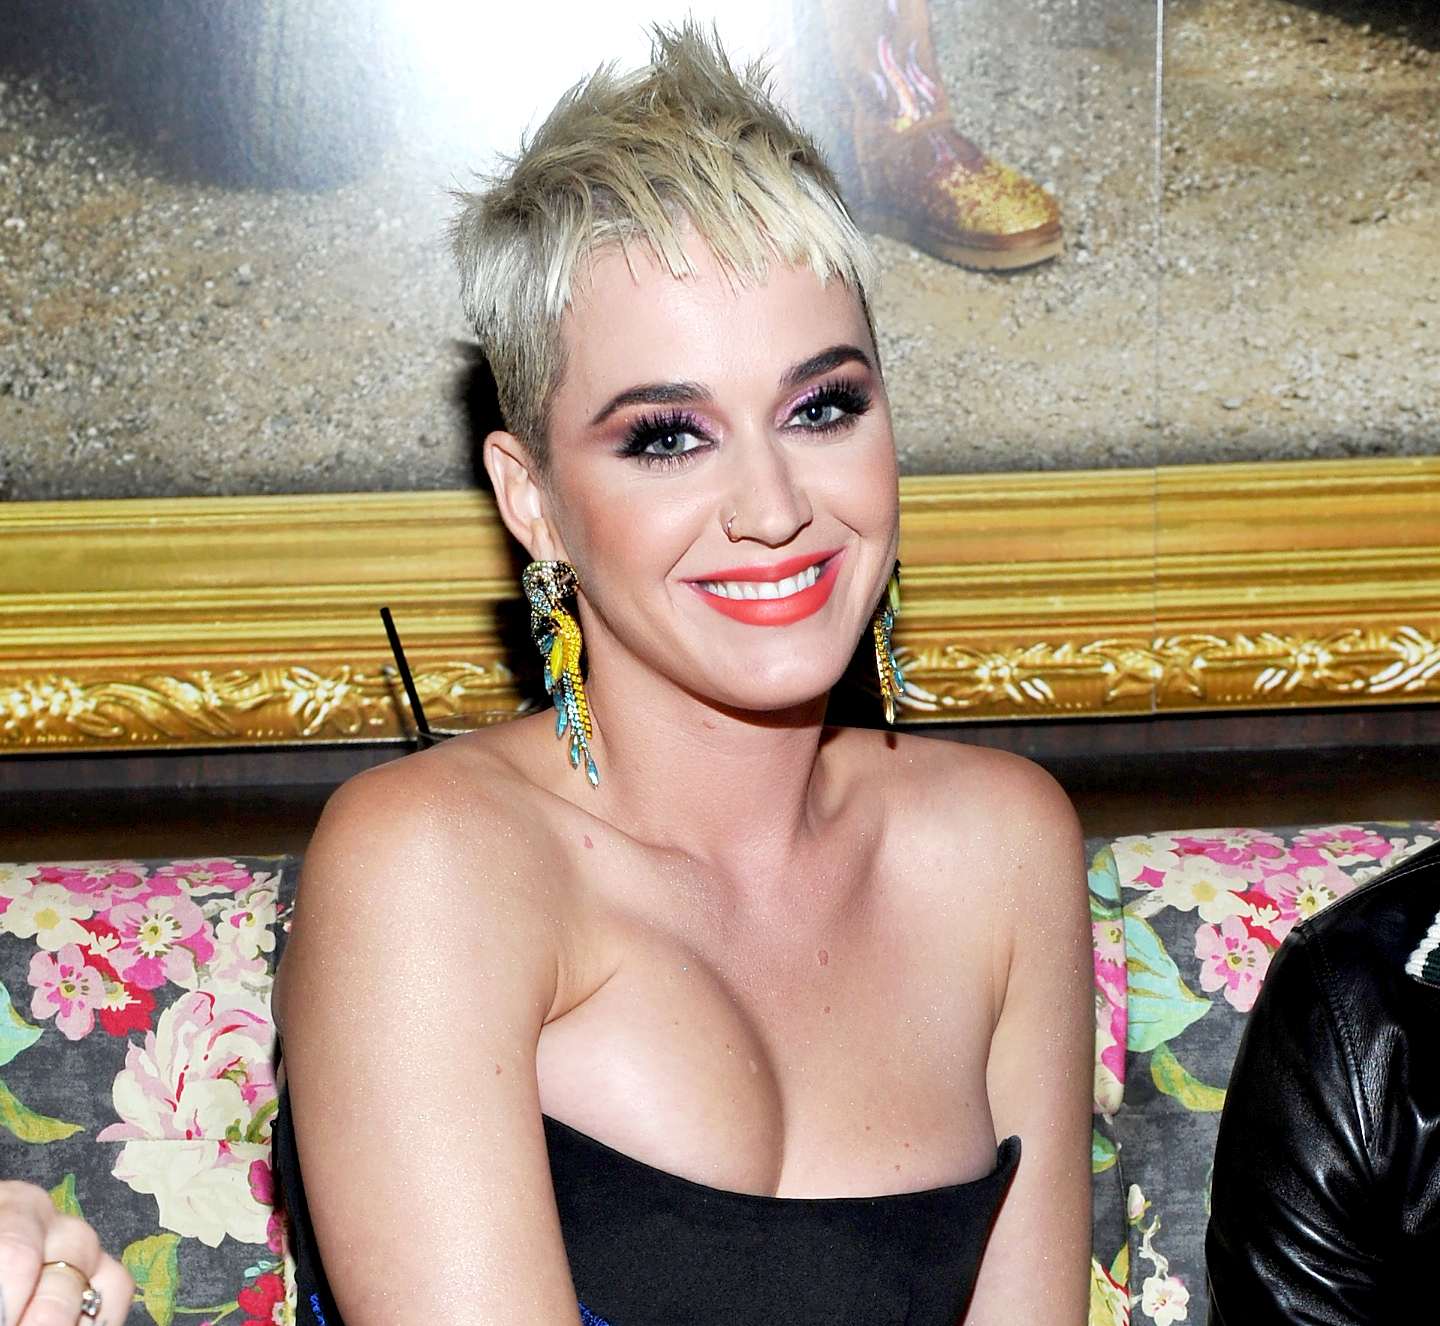 Awkward! Celebrities Who Had Horrible First Kisses - WEST HOLLYWOOD, CA – AUGUST 27: Katy Perry at UGG x Jeremy Scott Collaboration Launch Event at The h.wood Group's 'Poppy' on August 27, 2017 in West Hollywood, California.